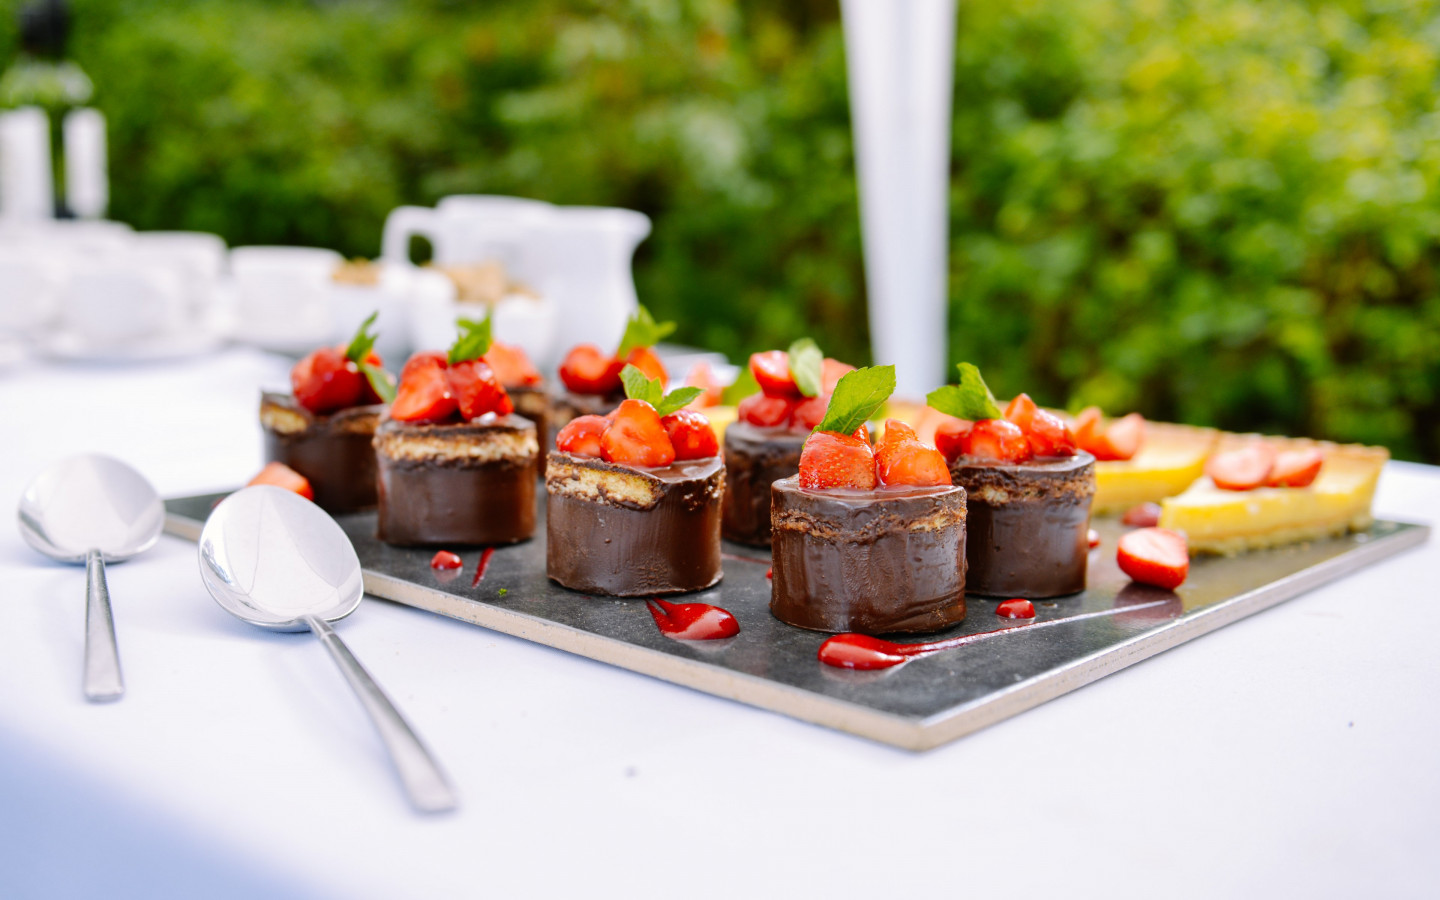 Chocolate cakes with strawberries | 1440x900 wallpaper